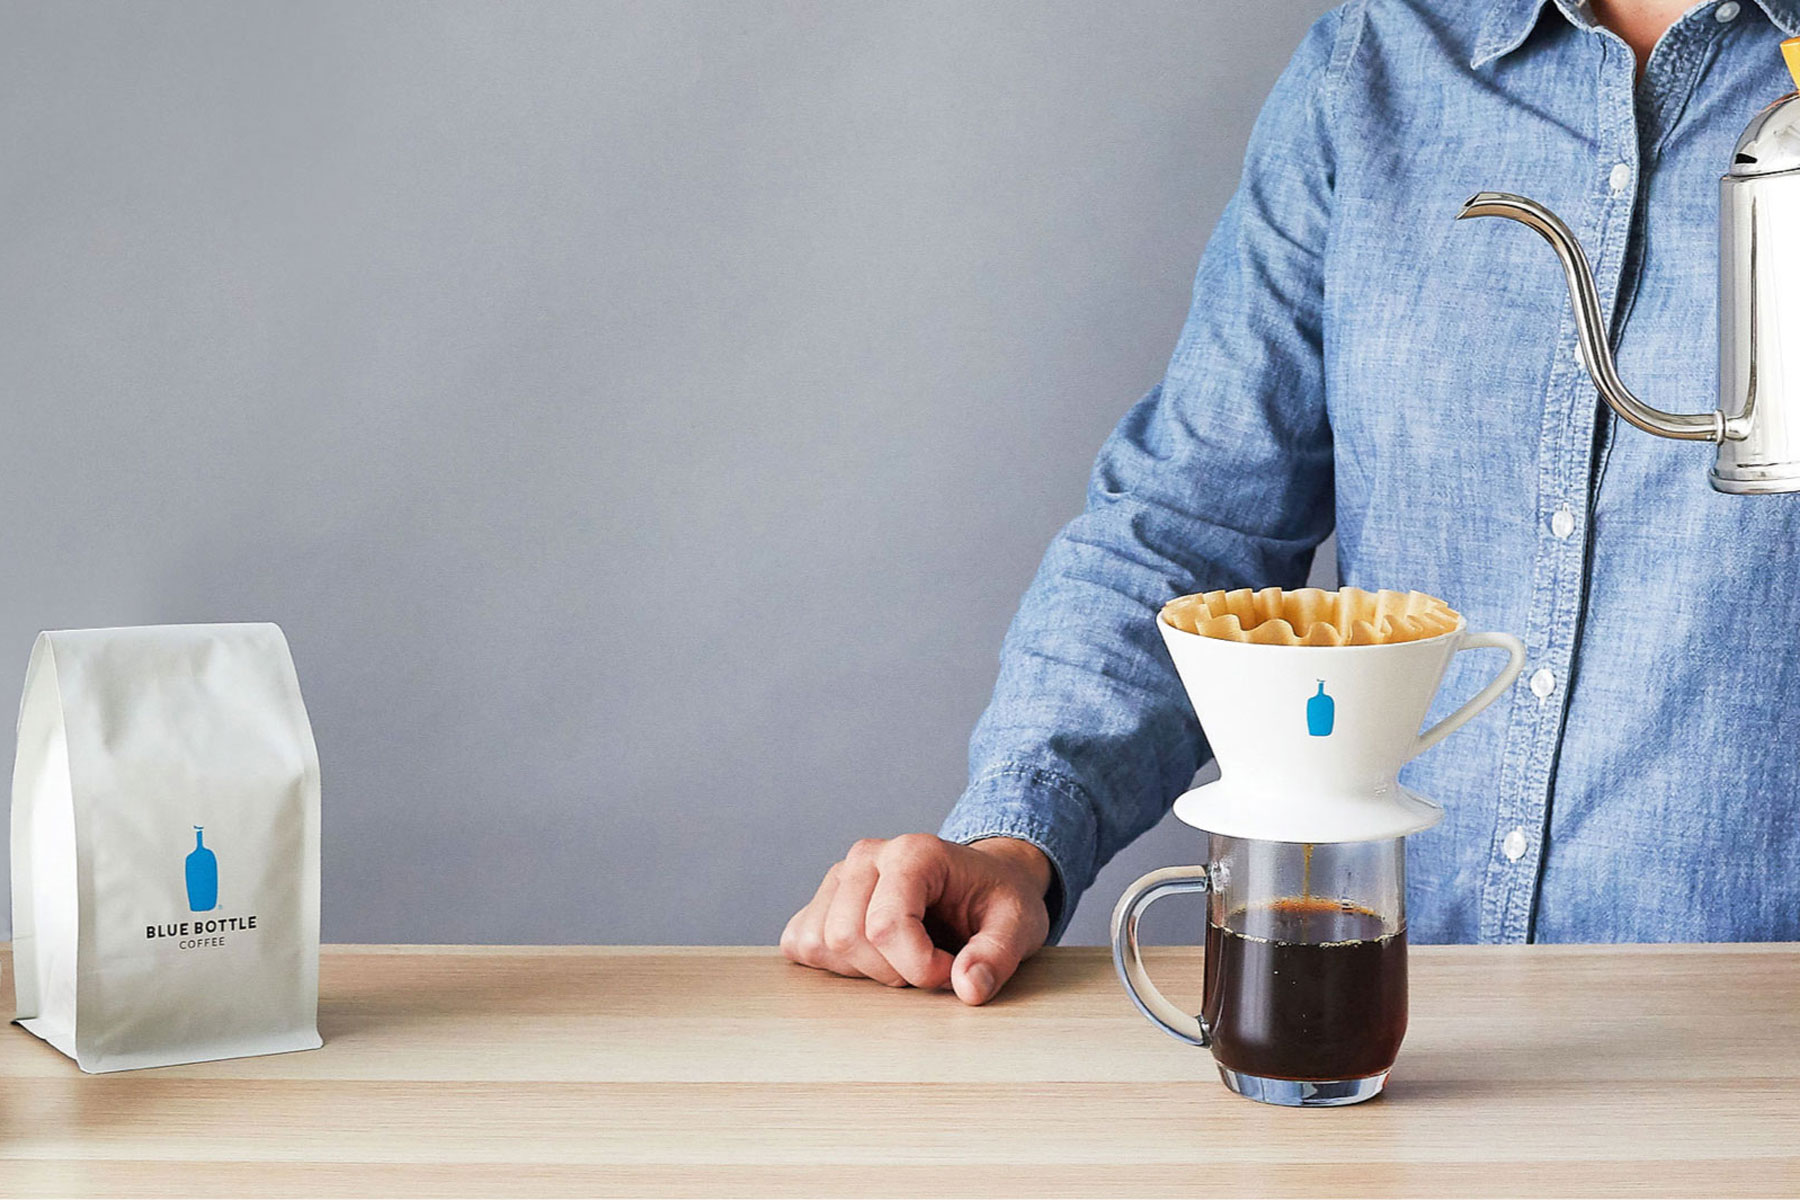 Pour over coffee with bag of blue bottle coffee